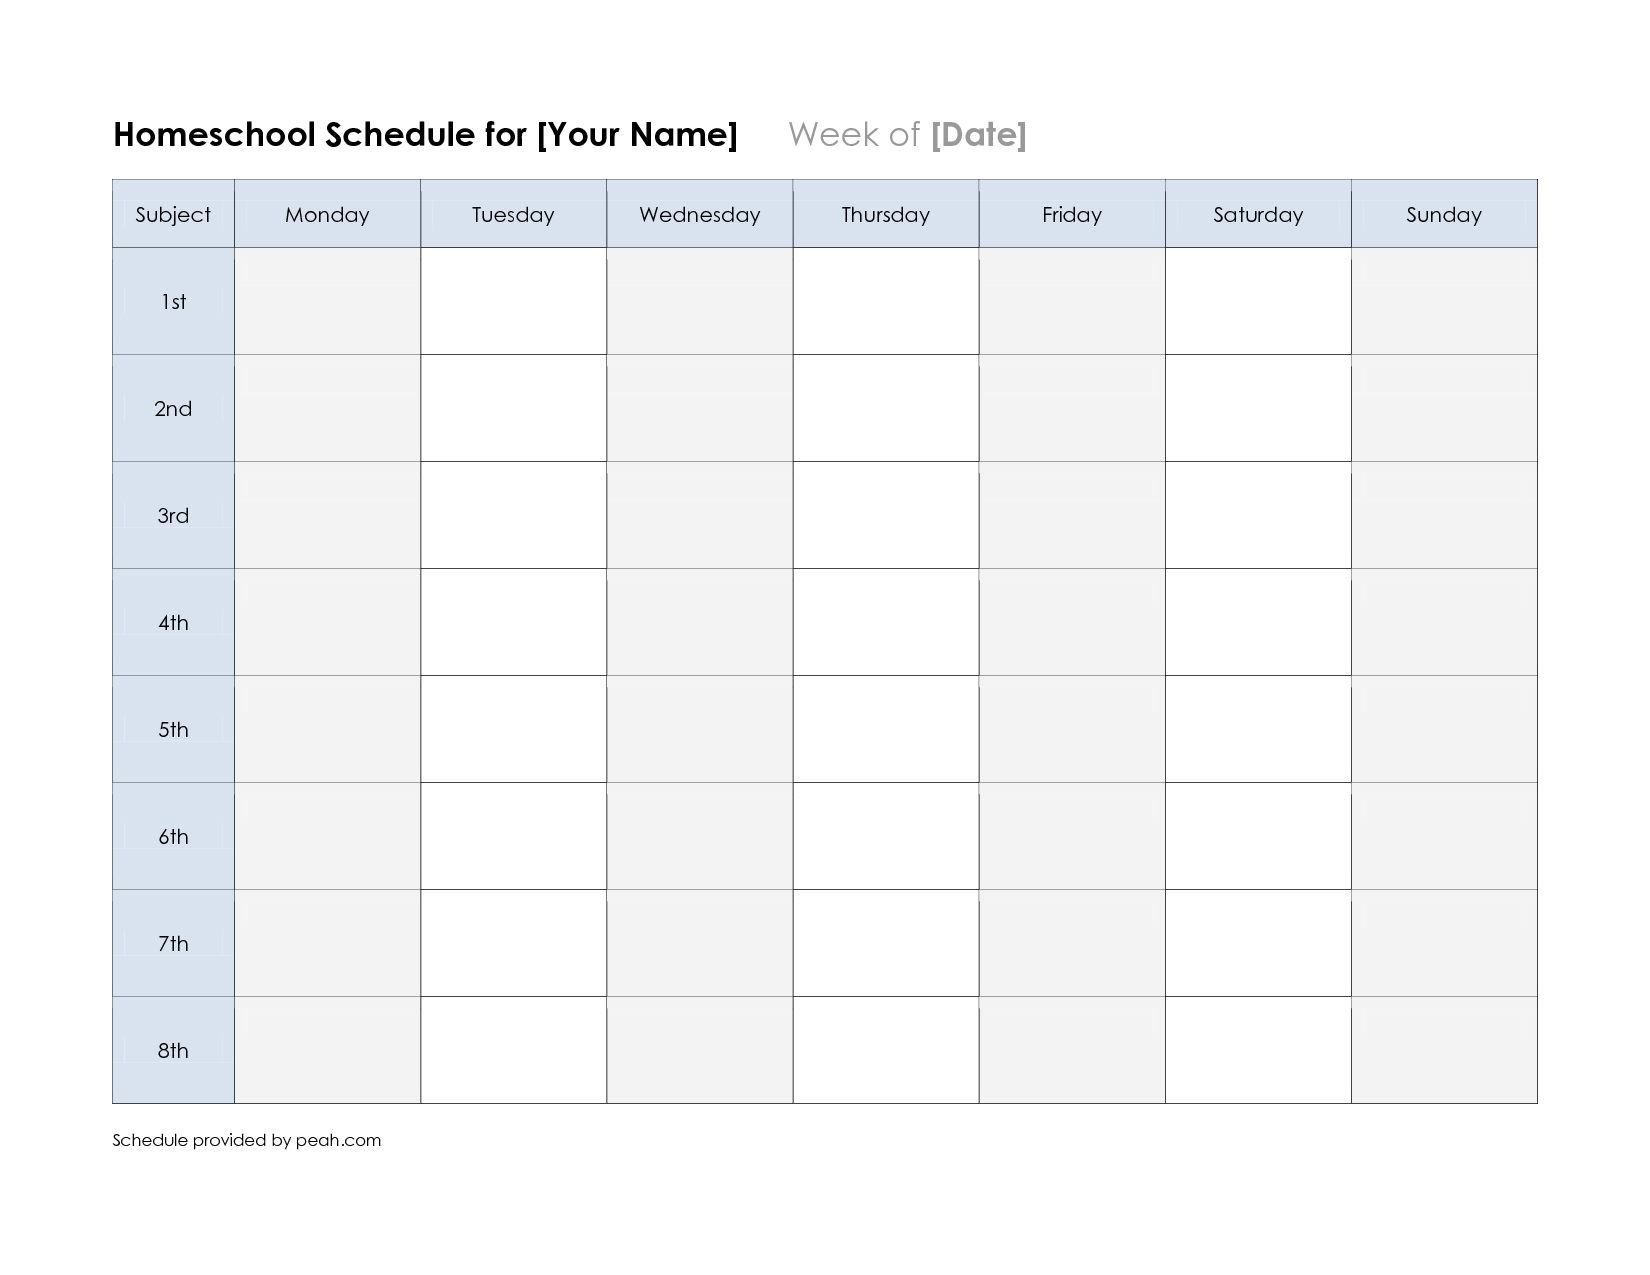 Free Printable Class Schedule Template | Printable Weekly with regard to Monday Through Saturday Schedule Template